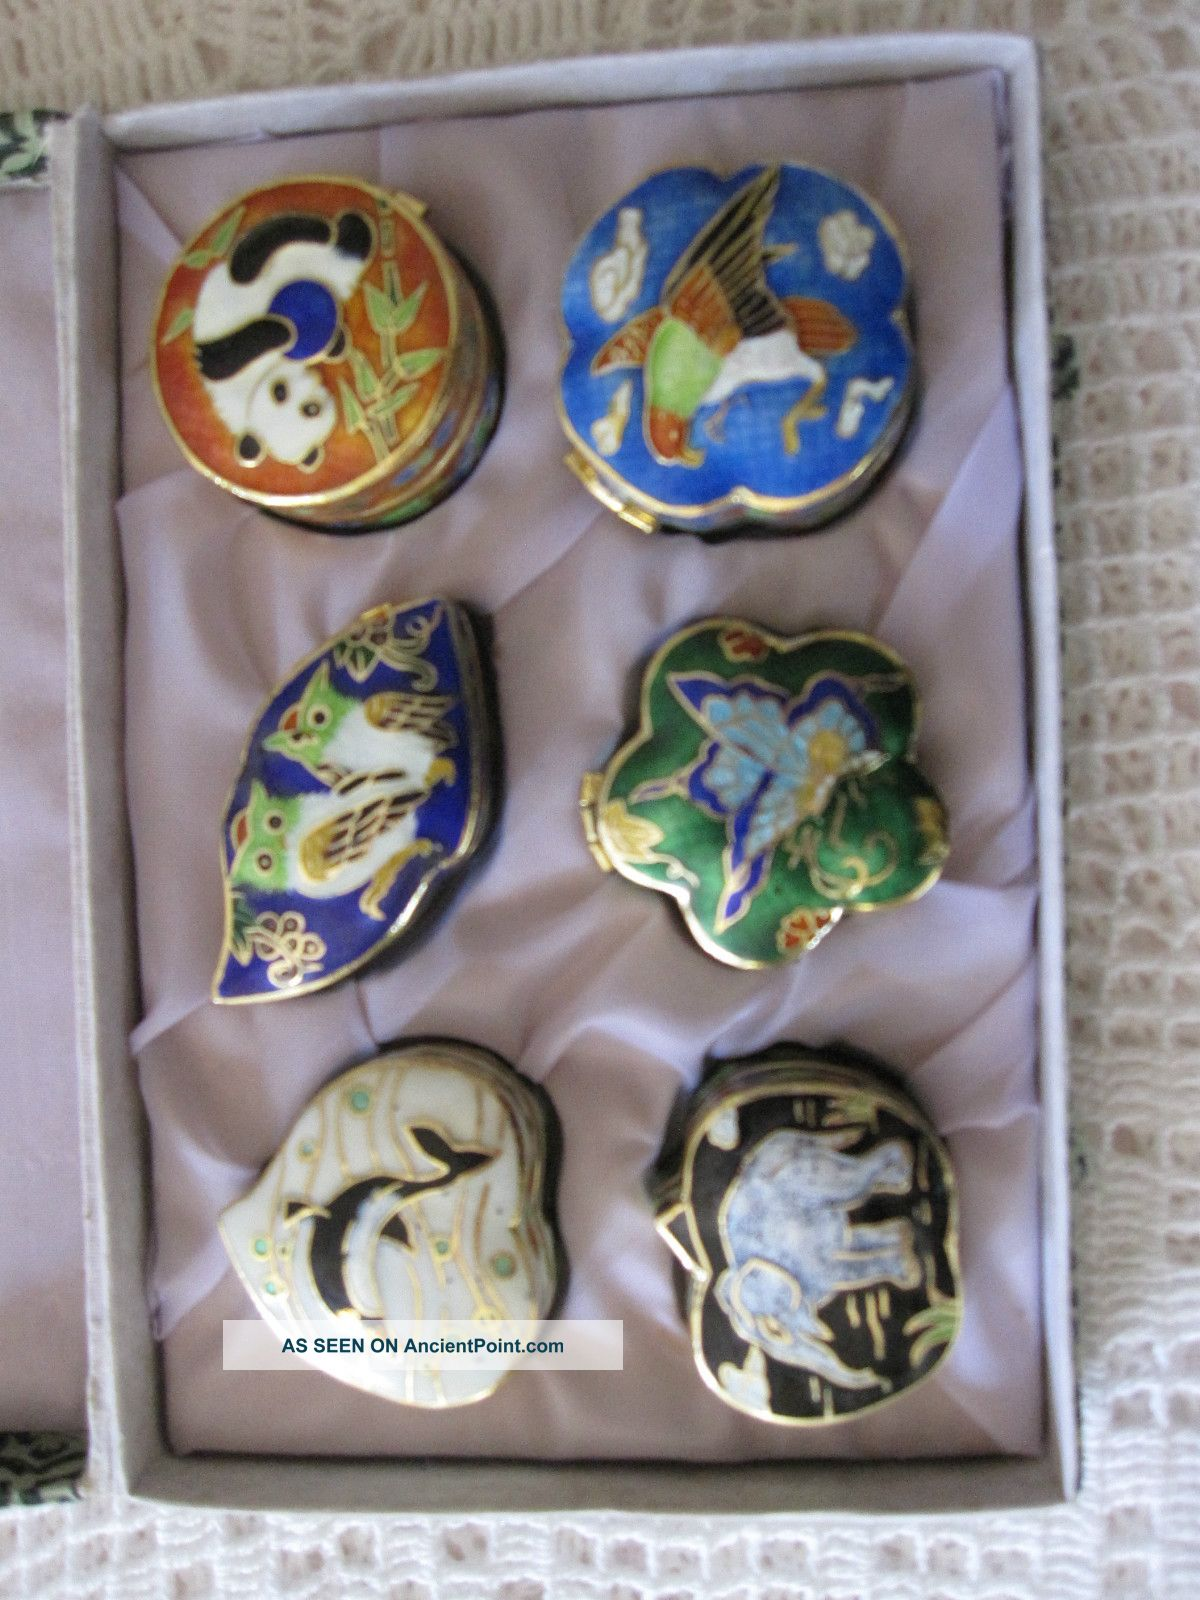 Six Cloisonne Pill Boxes In Lovely Gift Box Boxes photo